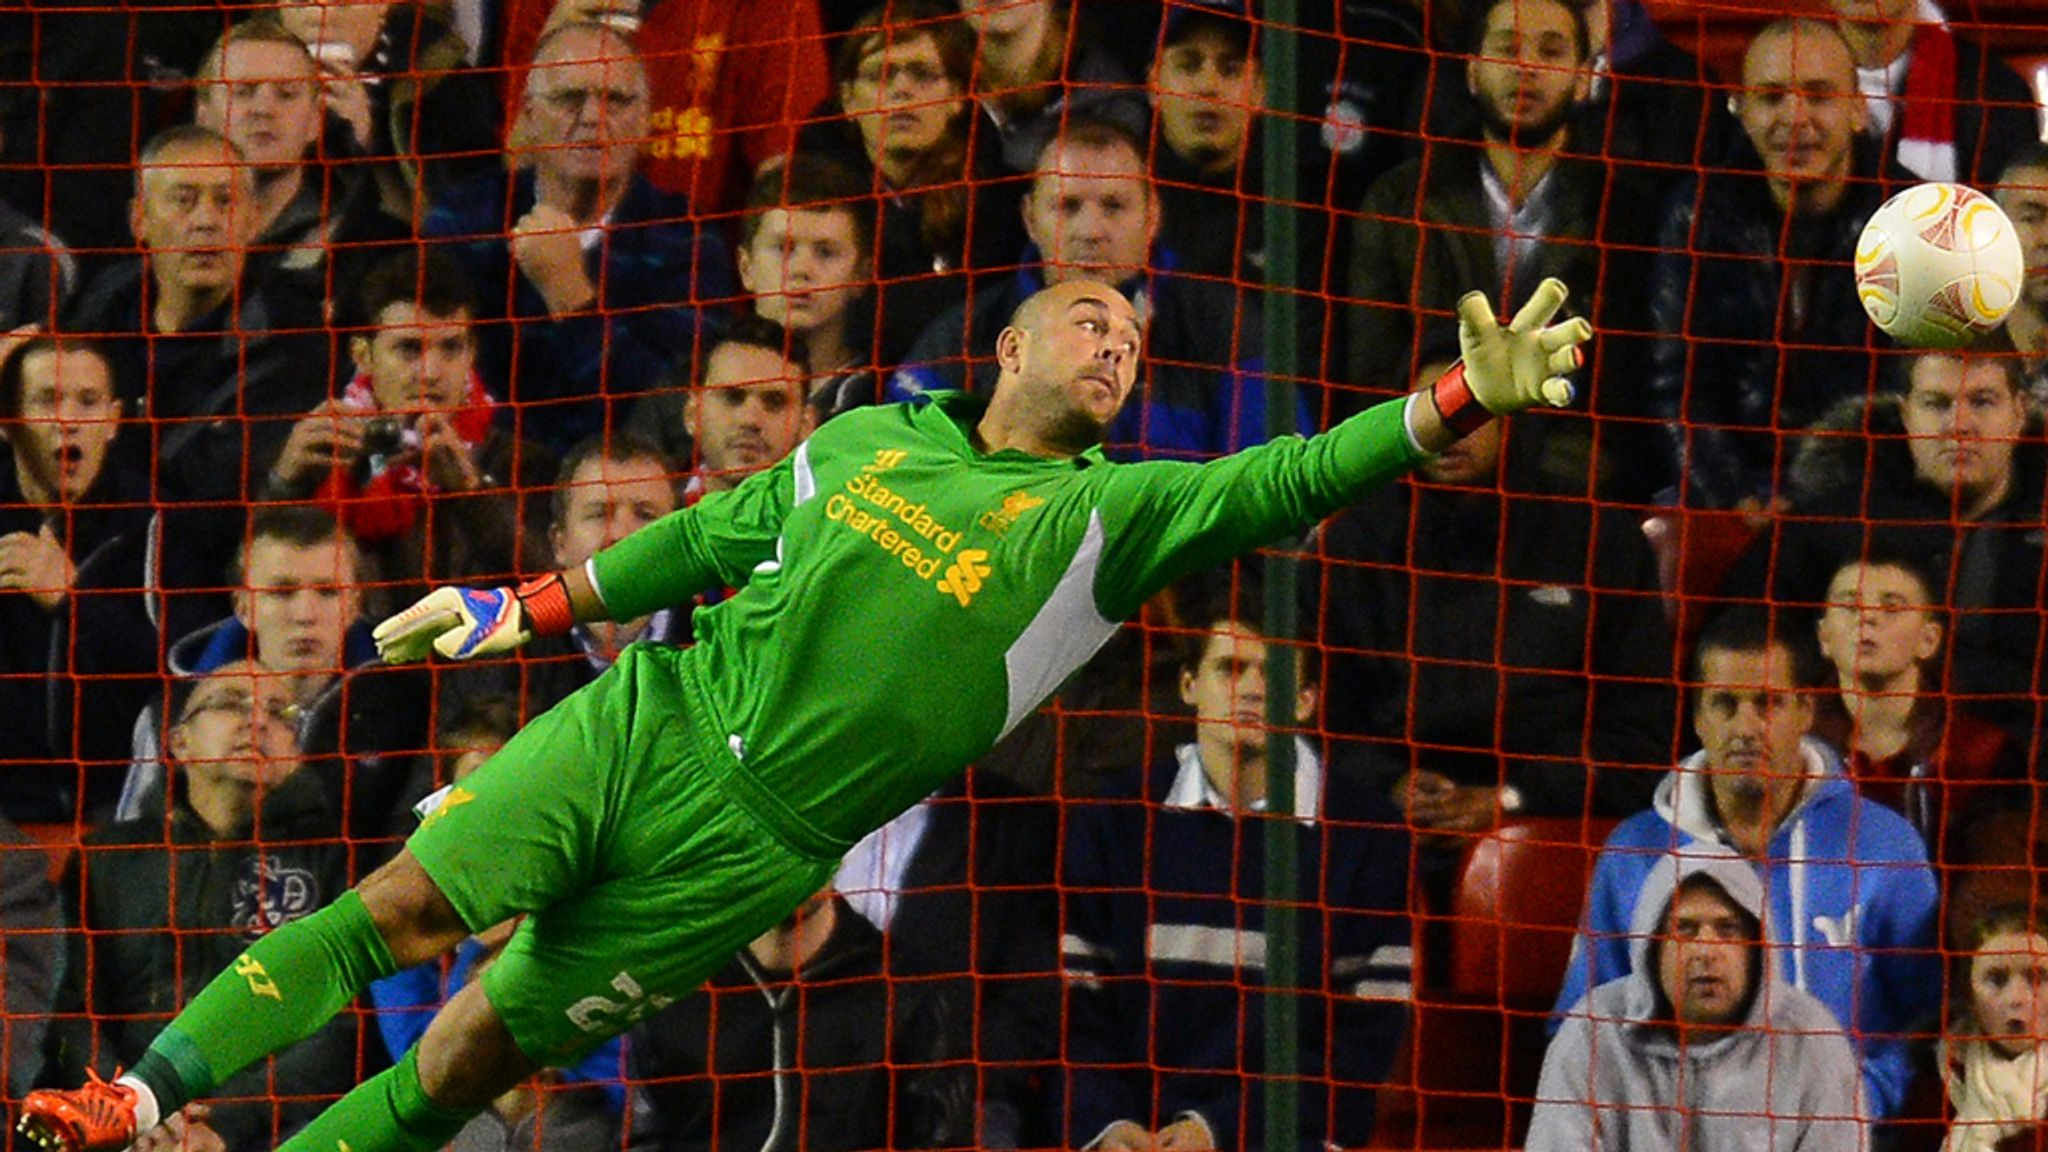 Pepe Reina back in Liverpool training ahead of Everton game